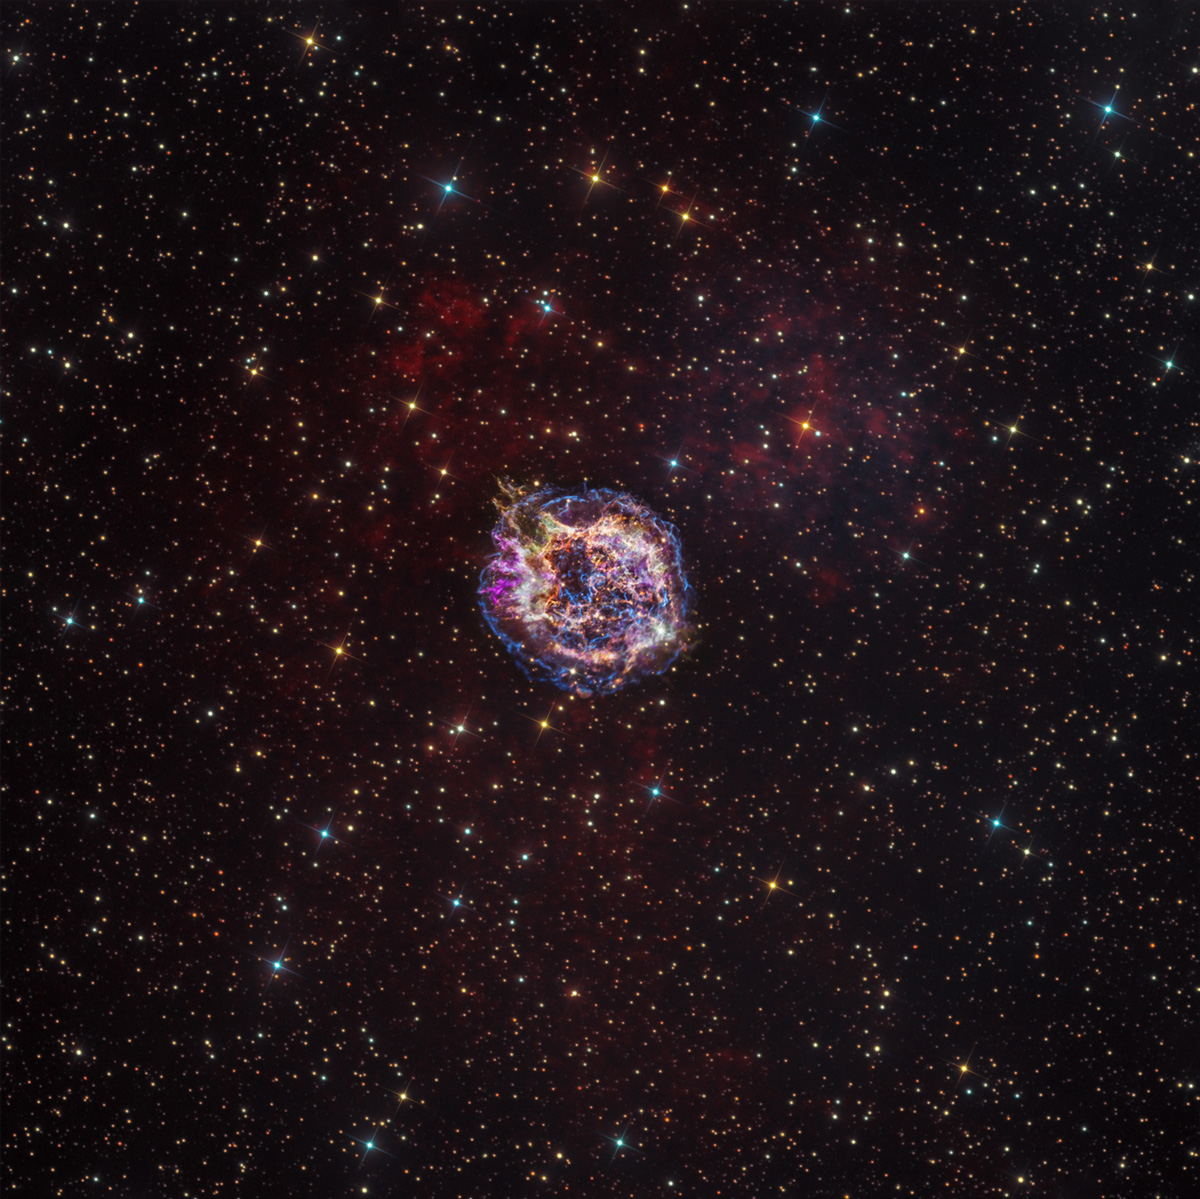 Overlay, composed of X-ray and optical image data from the Chandra X-ray Observatory and Hubble Space Telescope